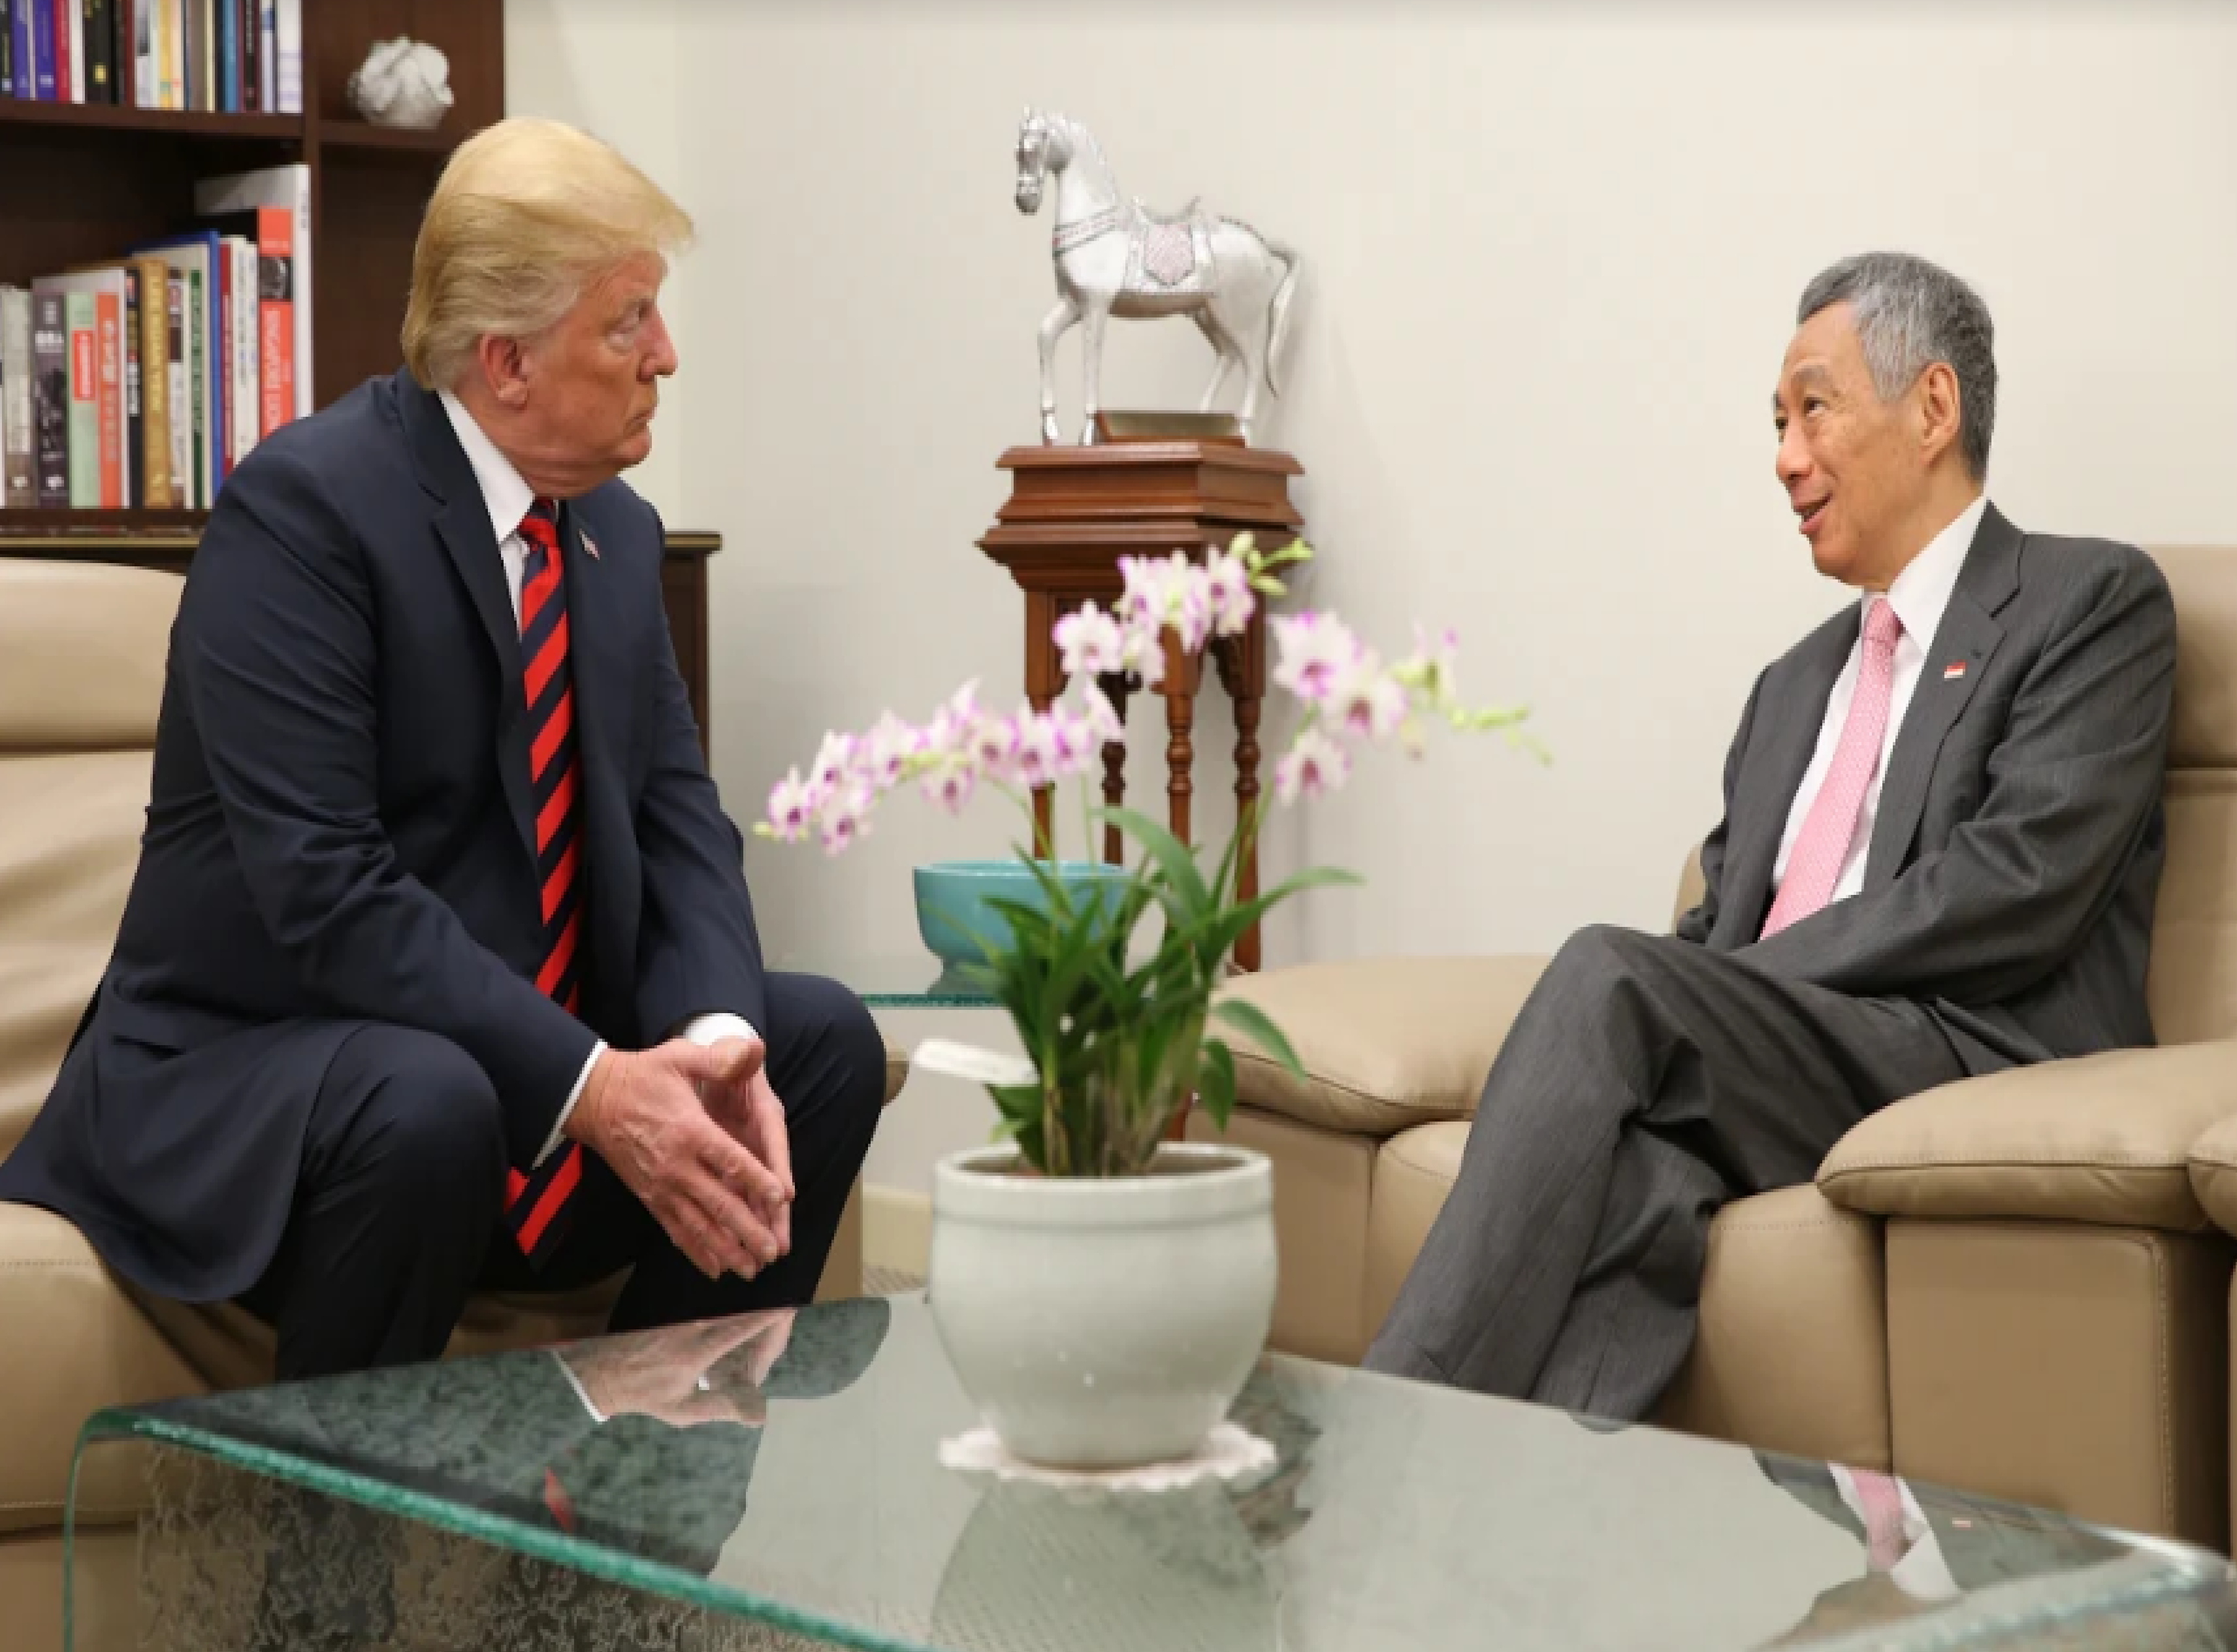 Both leaders reaffirmed the excellent relations between Singapore and the US across the economic, defence, and security spheres.